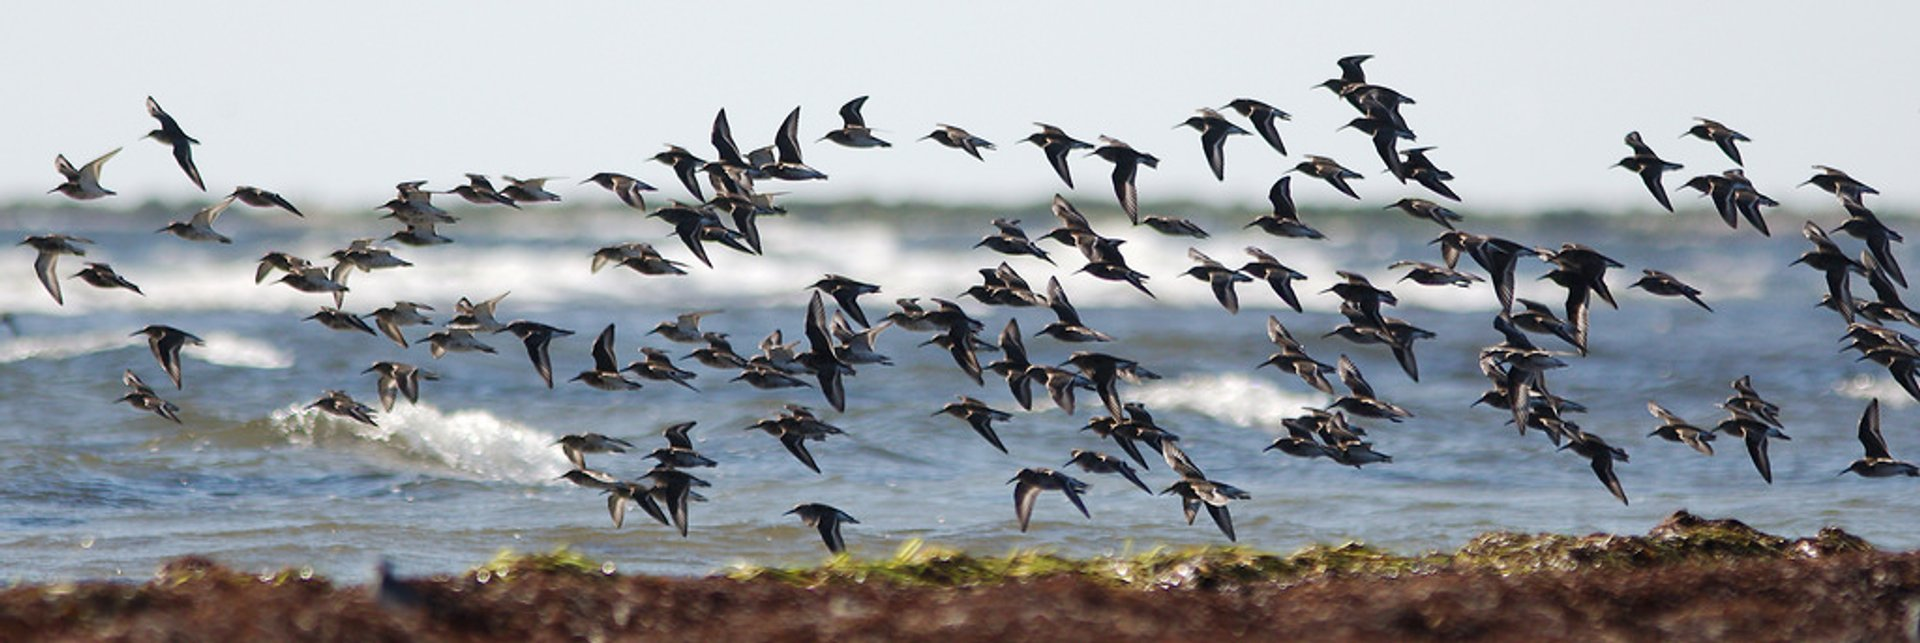 Migrating Birds at Falsterbo in Sweden - Best Time